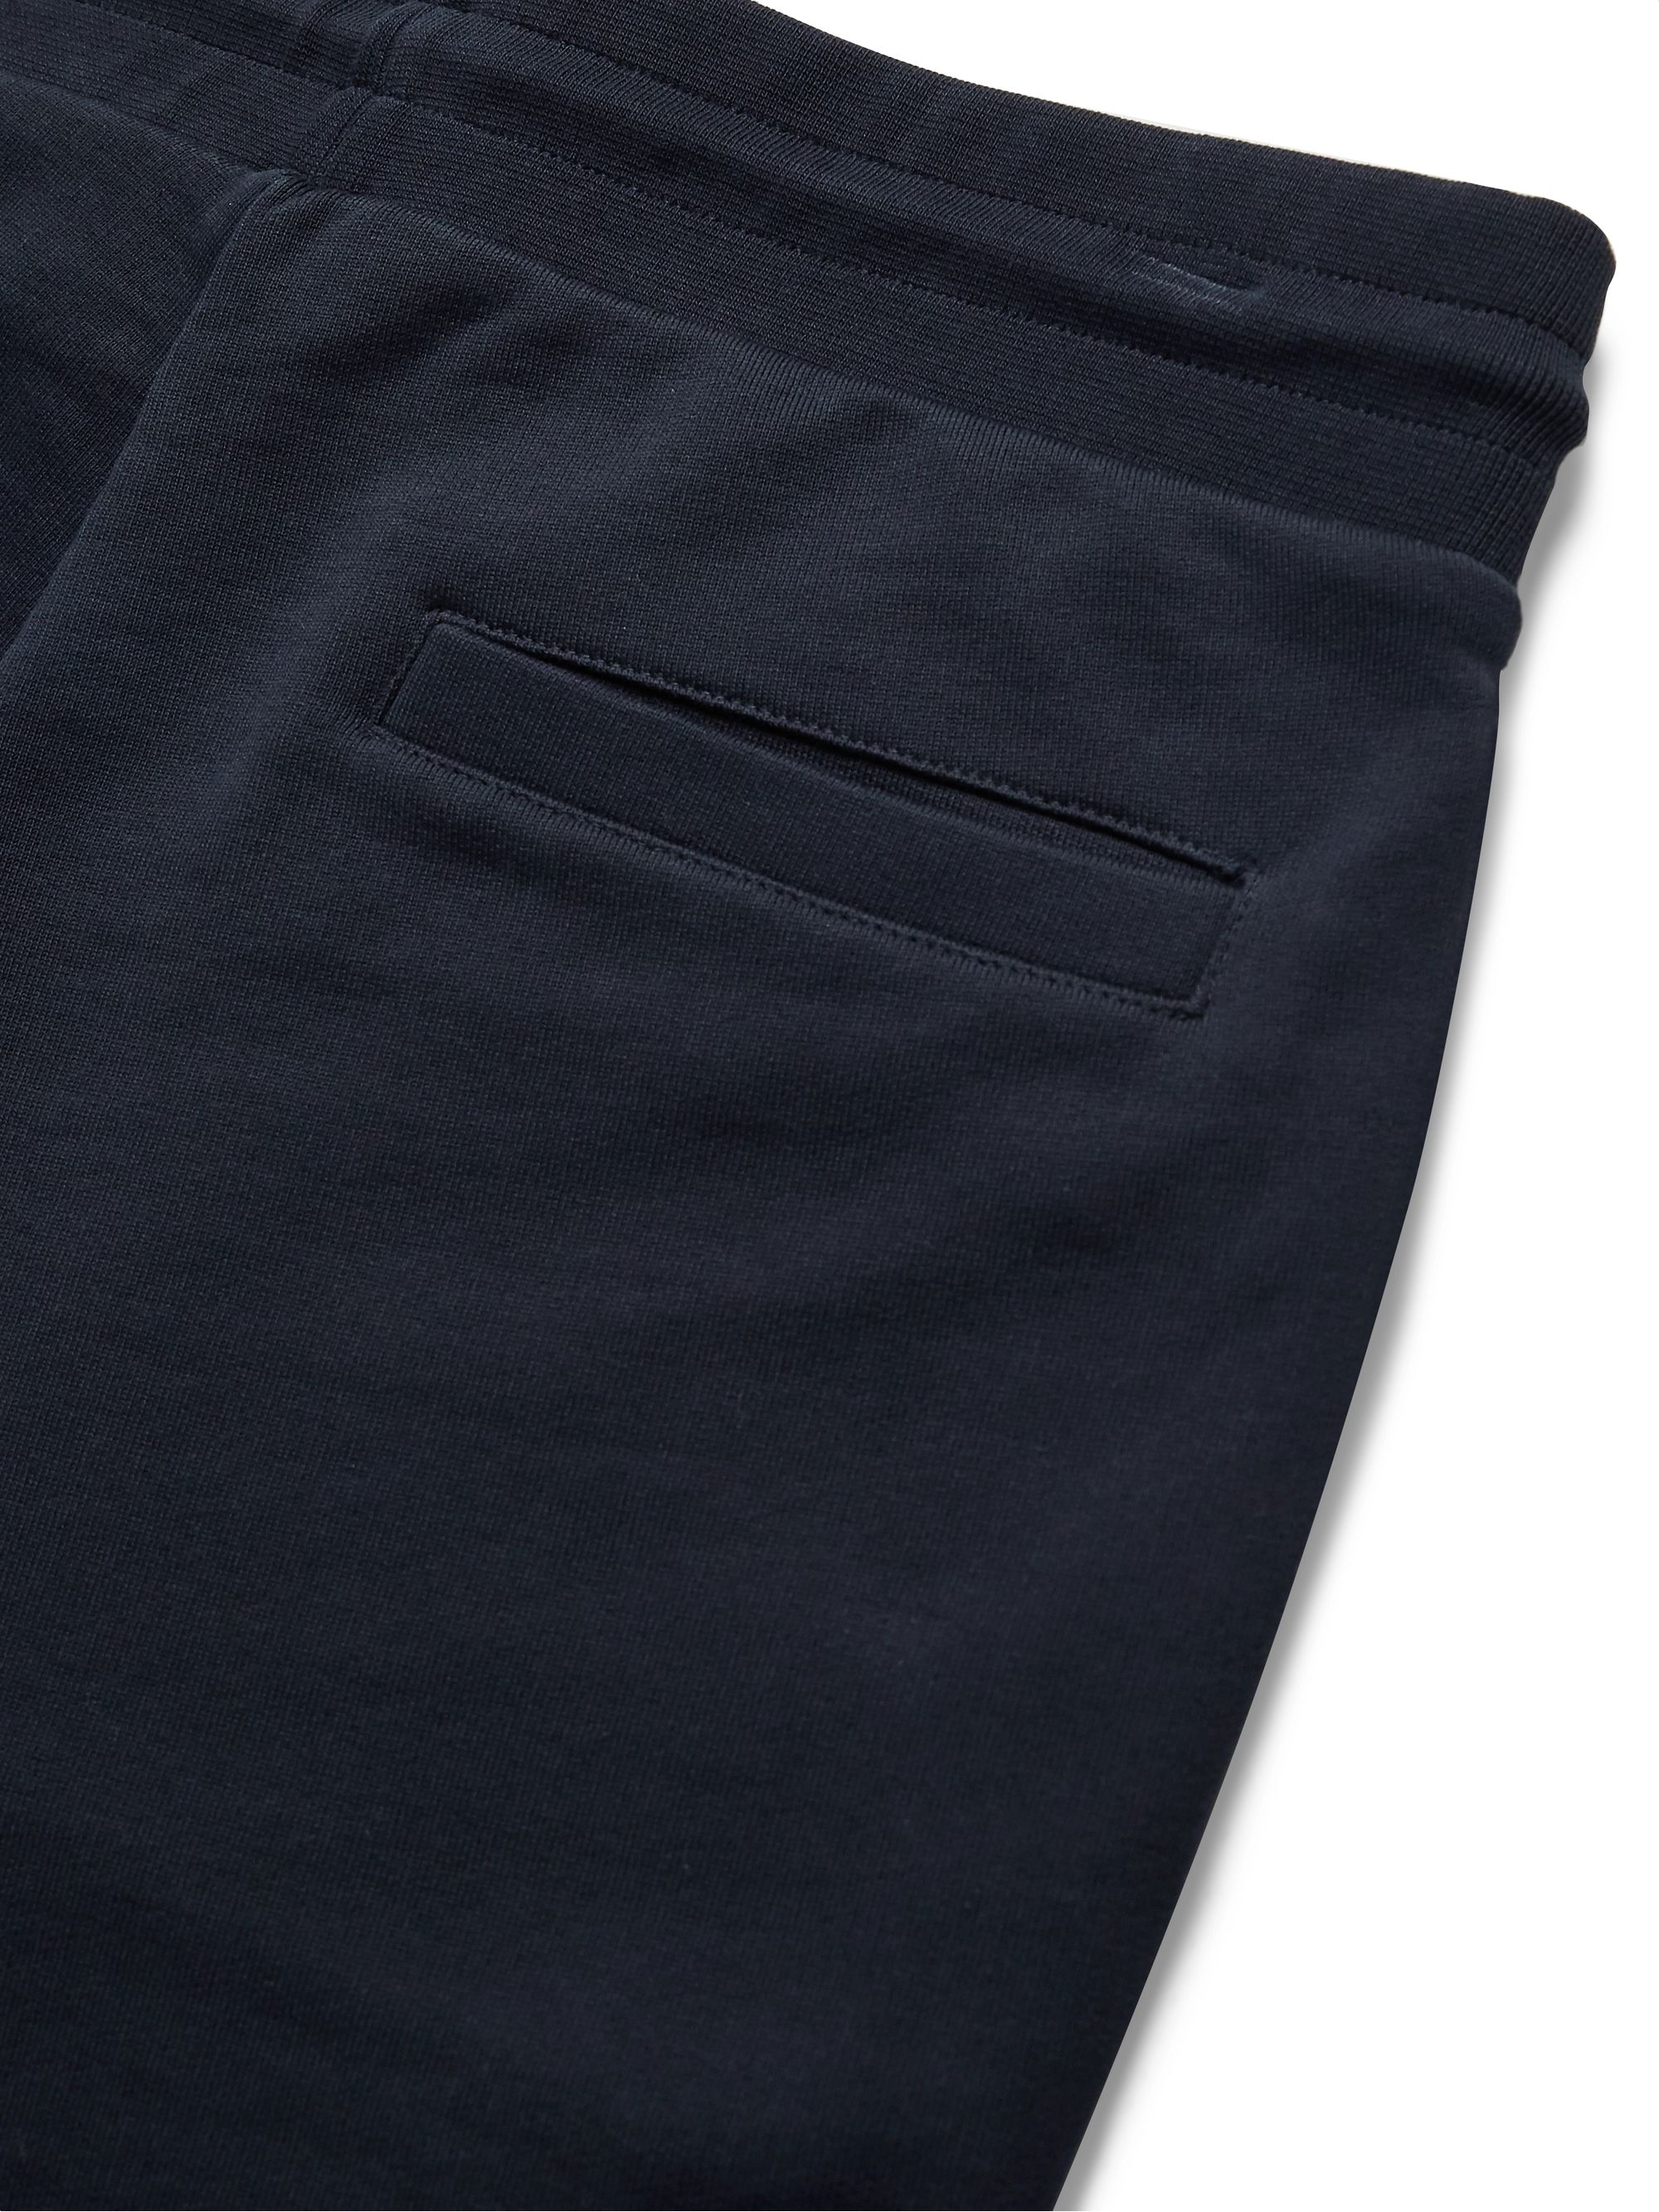 MONCLER Slim-Fit Tapered Logo-Embroidered Loopback Cotton-Jersey Sweatpants